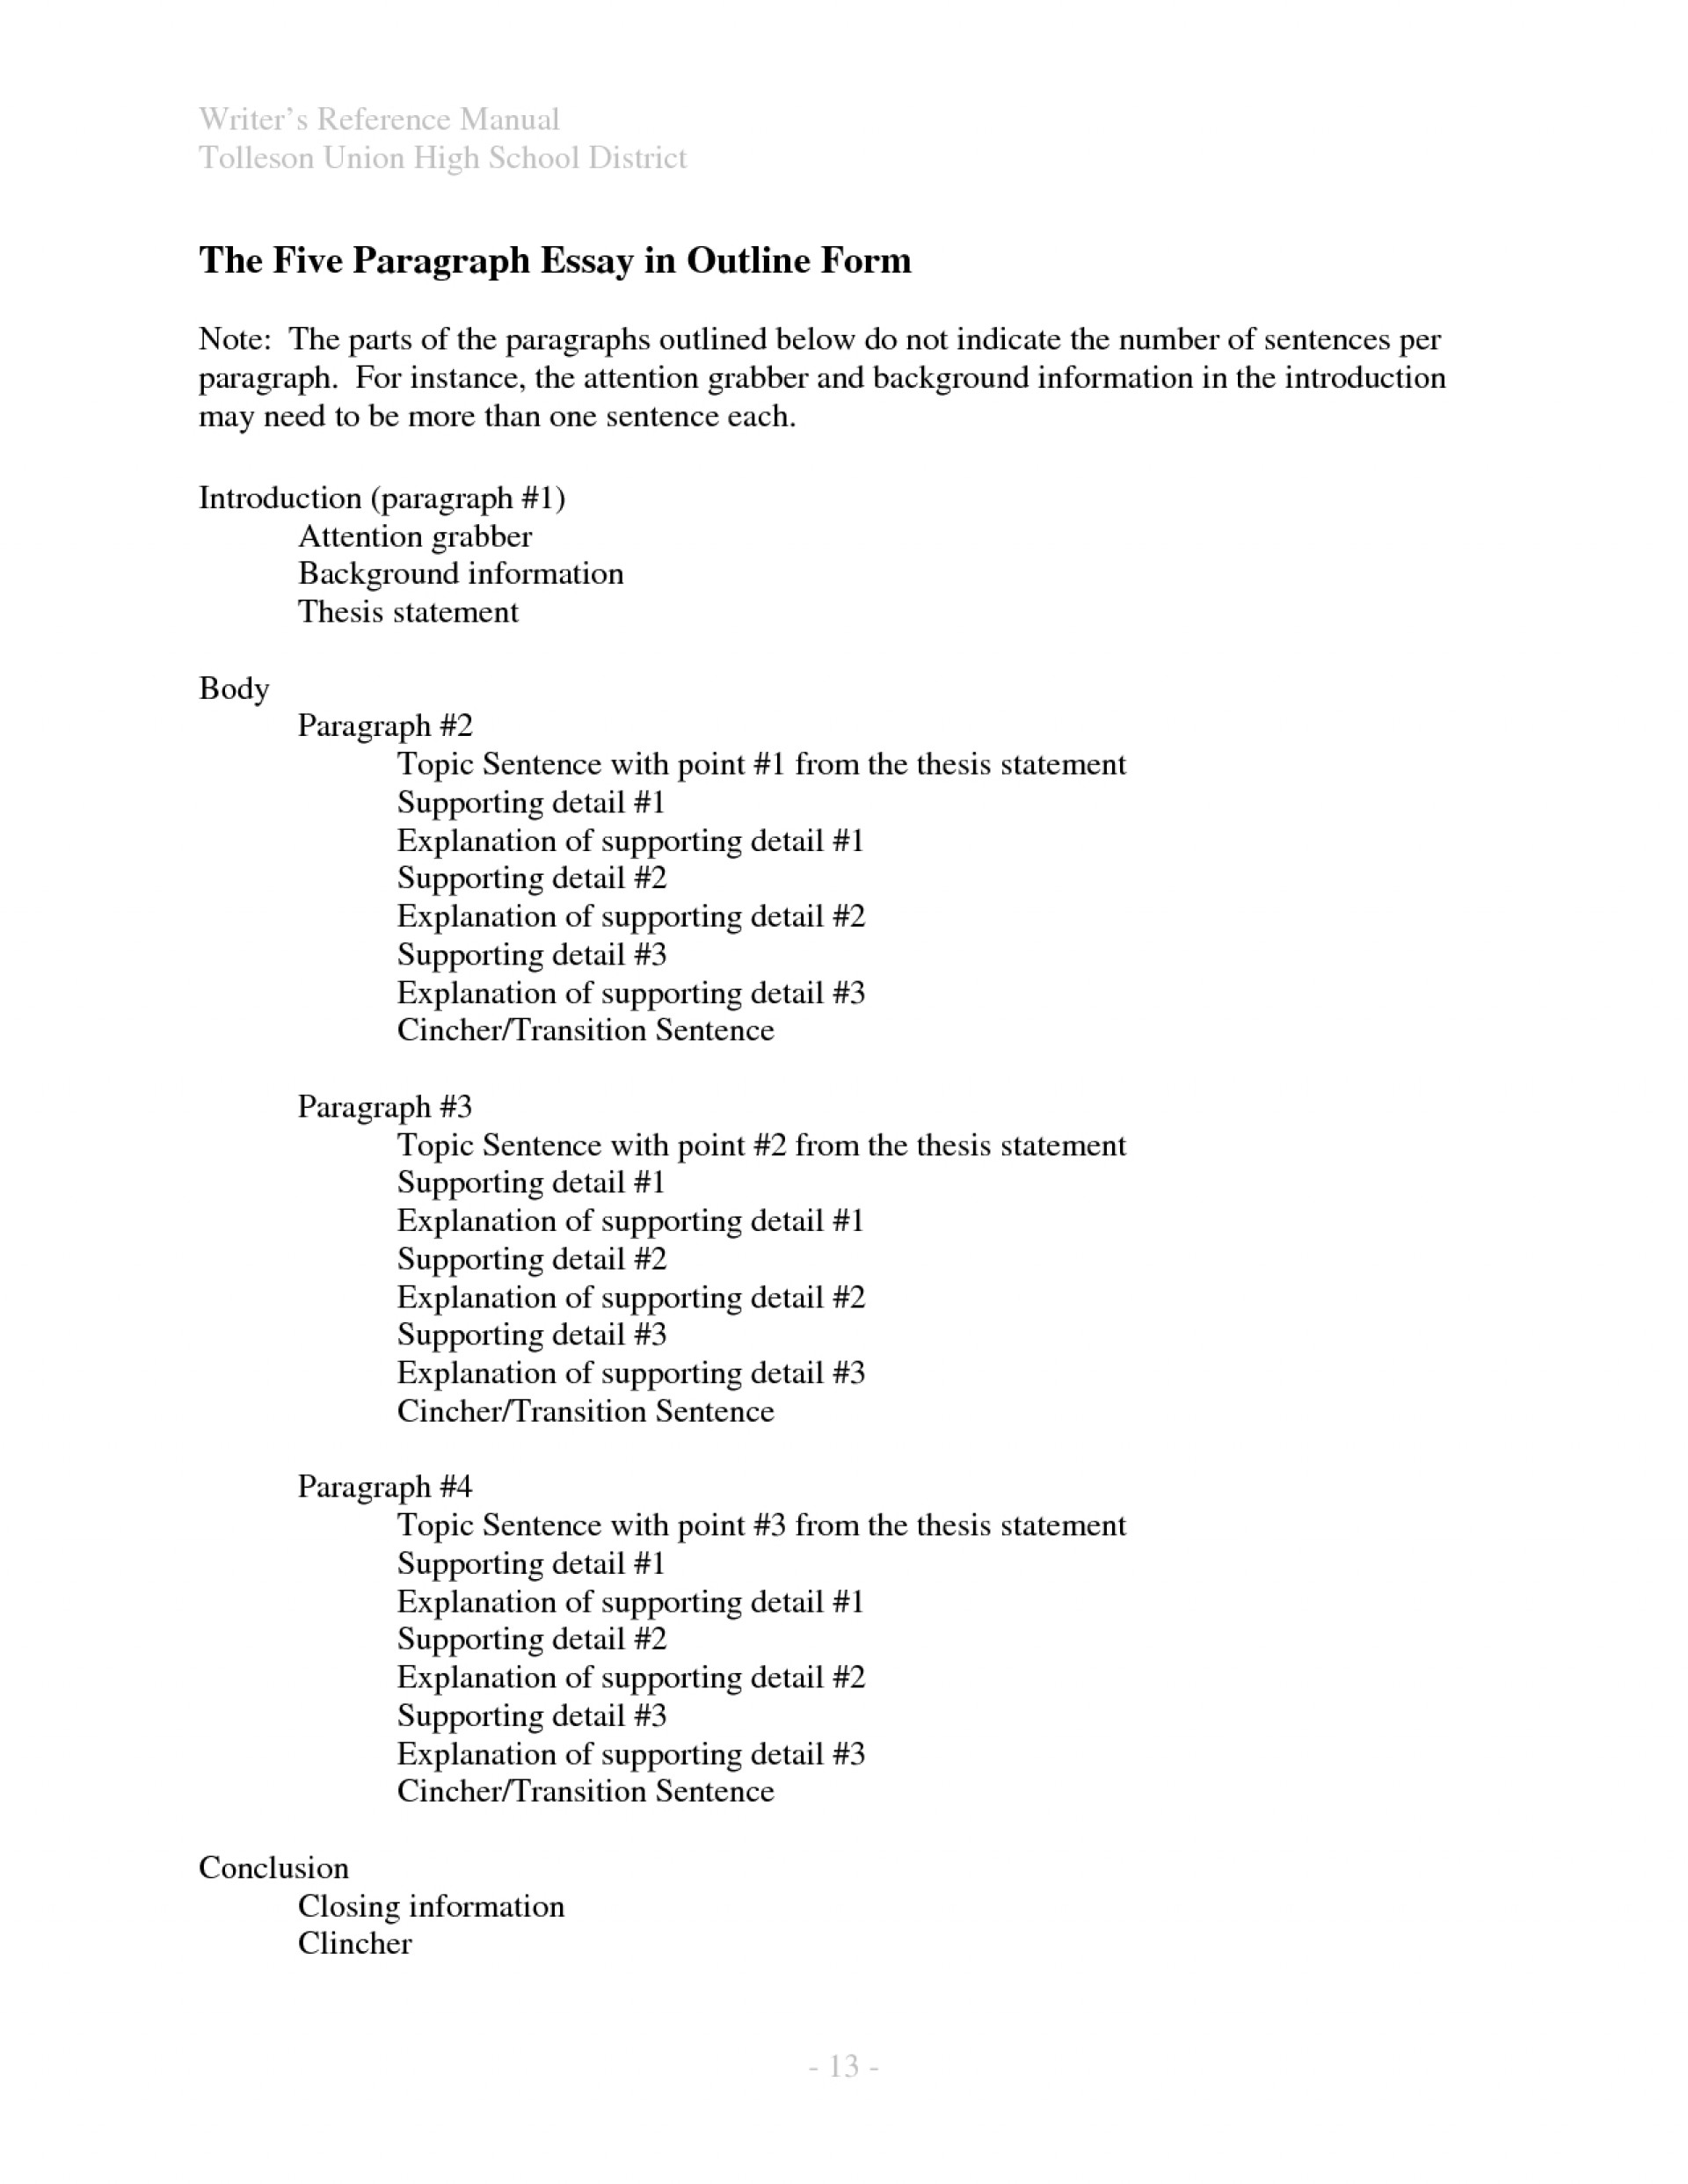 013 Paragraph Essay Example Persuasive Template High School Writings And Essays How To Write Format Onwe Bioinnovate Co Pertainin Body Outline Opinion Argumentative Exceptional 3 Graphic Organizer Examples 1920